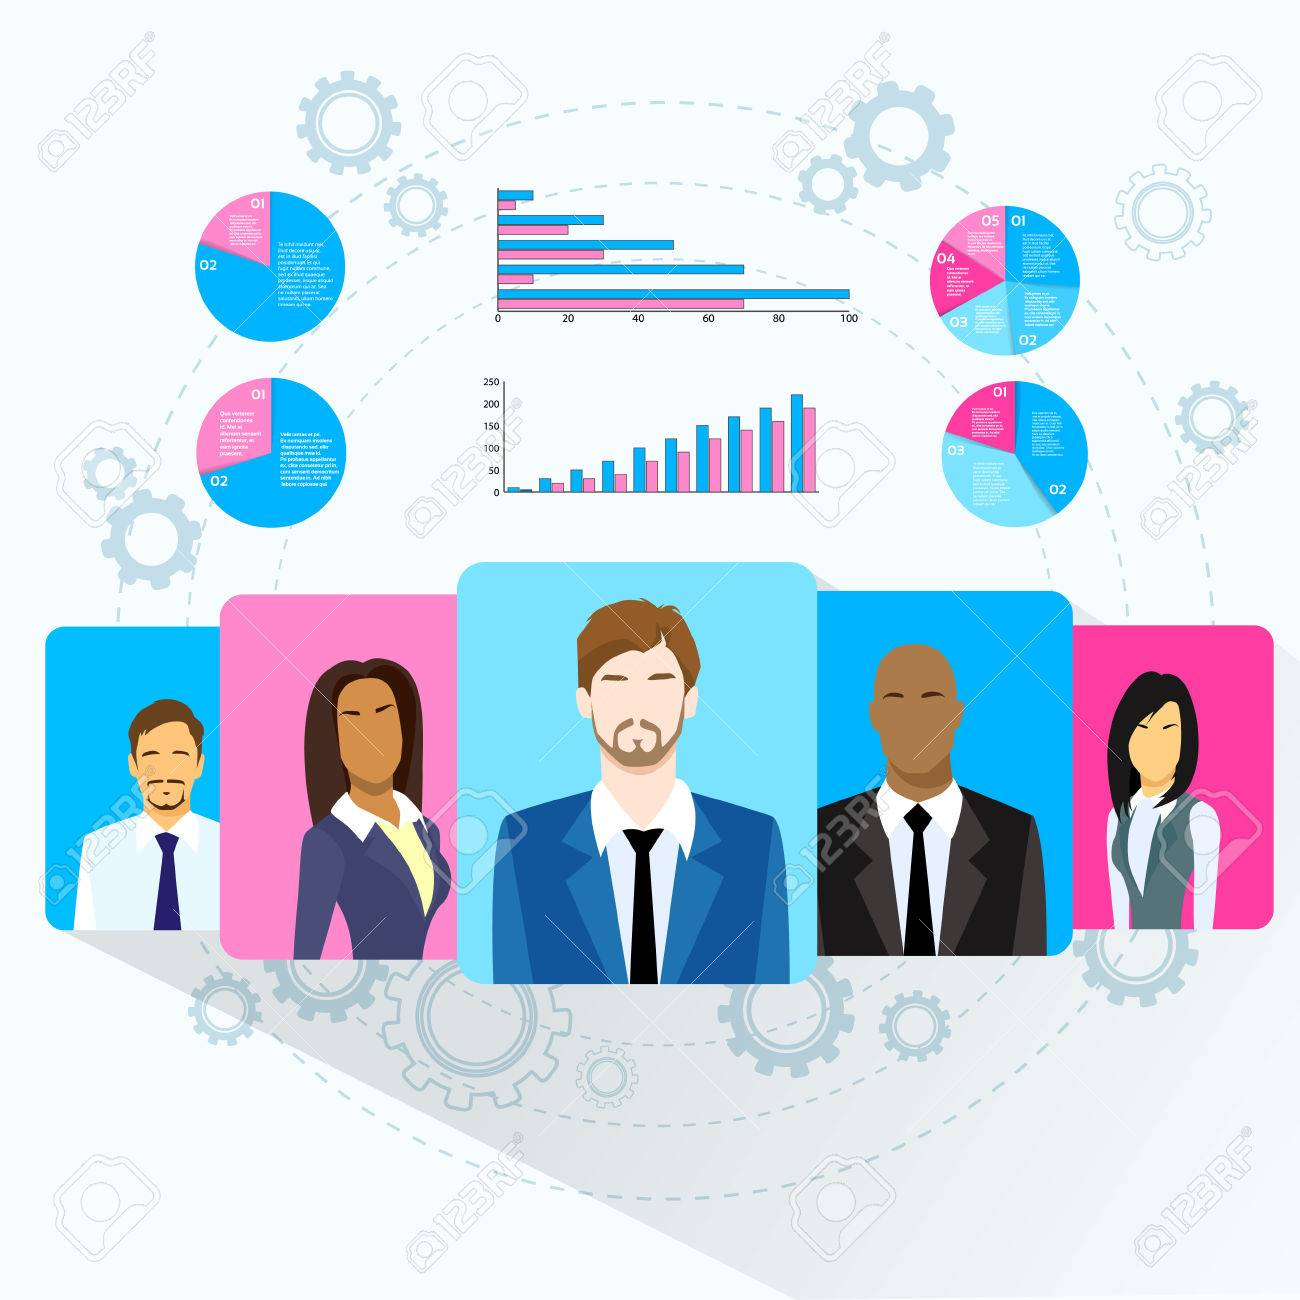 Business people team profile icon finance chart diagram social business people team profile icon finance chart diagram social media marketing target group audience information flat ccuart Image collections